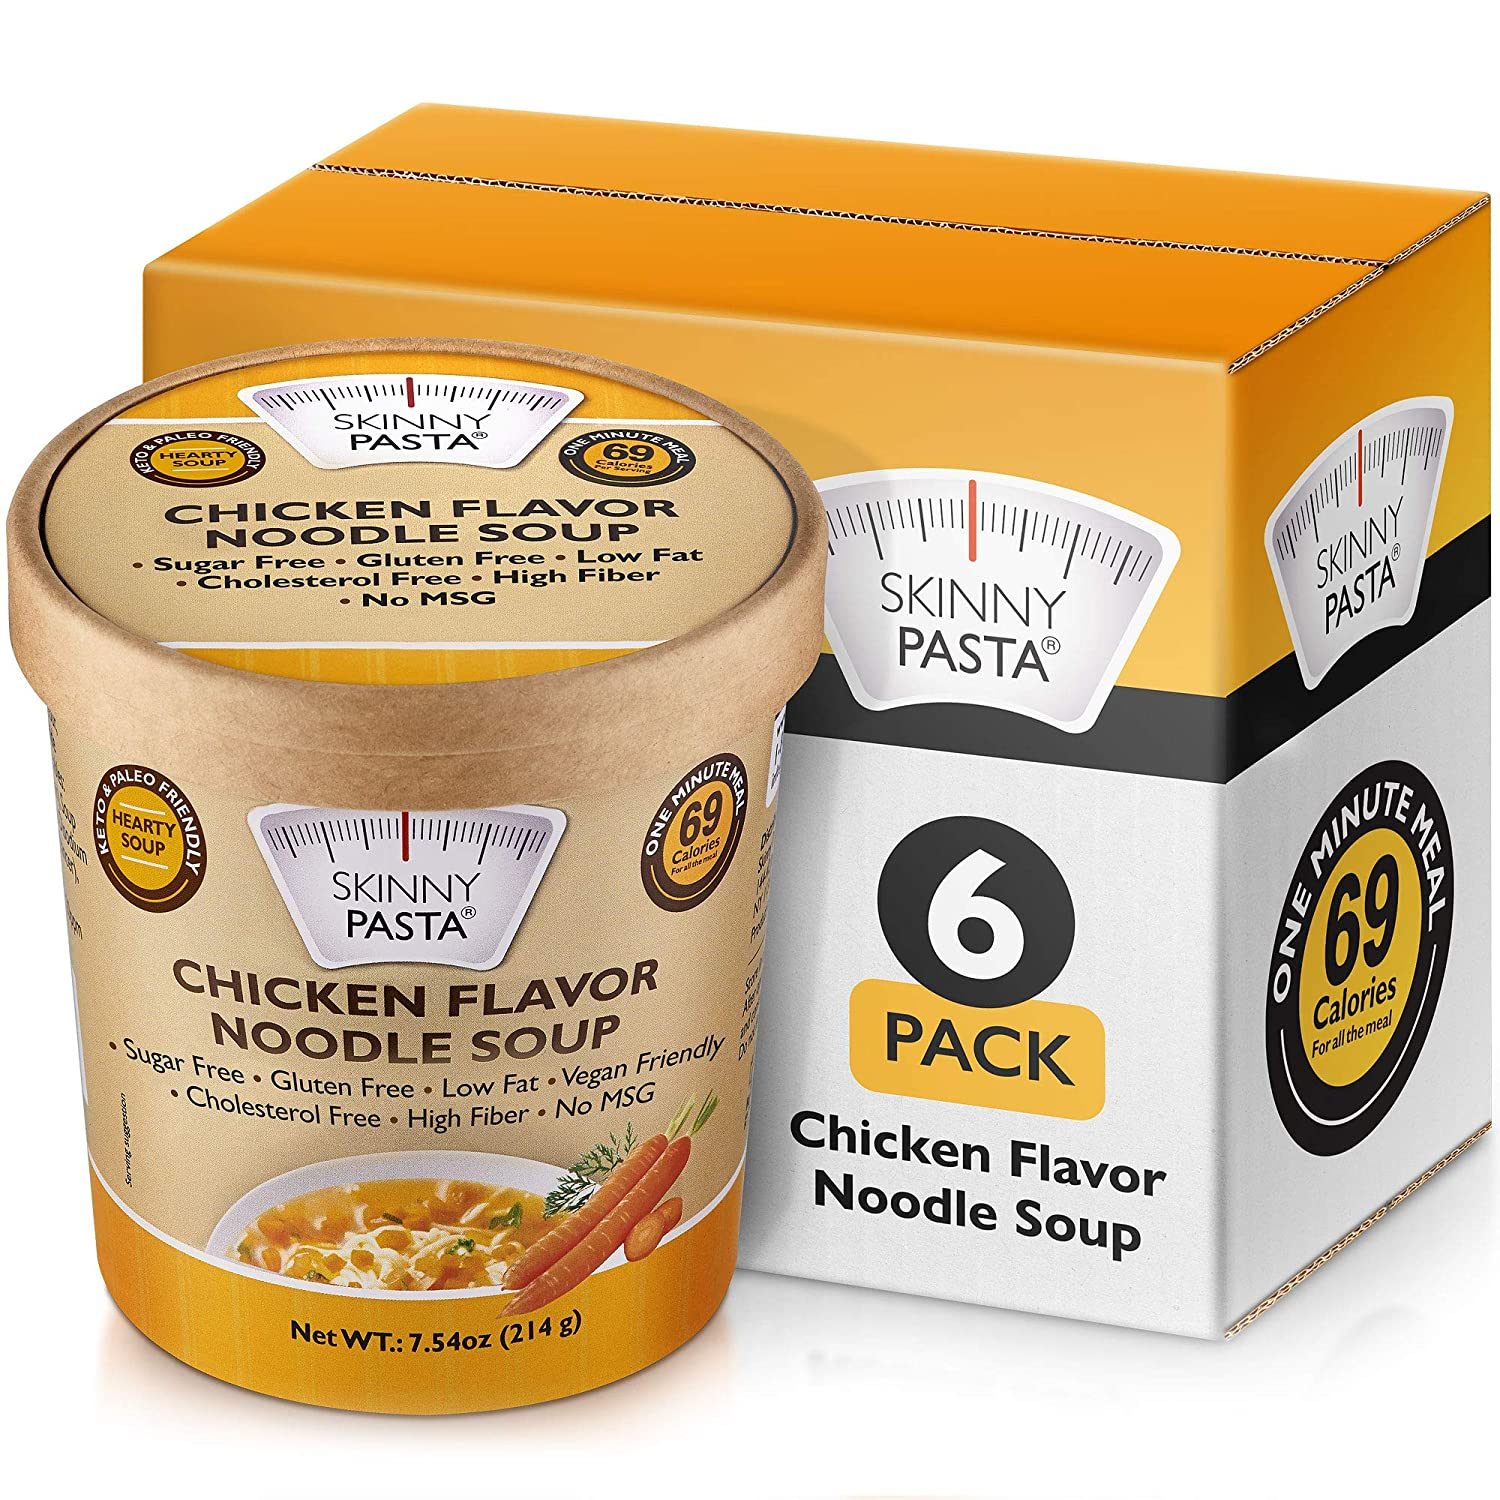 Skinny Pasta Healthy Shirataki Noodle Soup Chicken Flavor | Ultra-Low Calorie Konjac Pasta for Weight Loss | High Fiber, Carb Free, Keto & Paleo Friendly Vegan Noodles Instant Soup | 6 pack